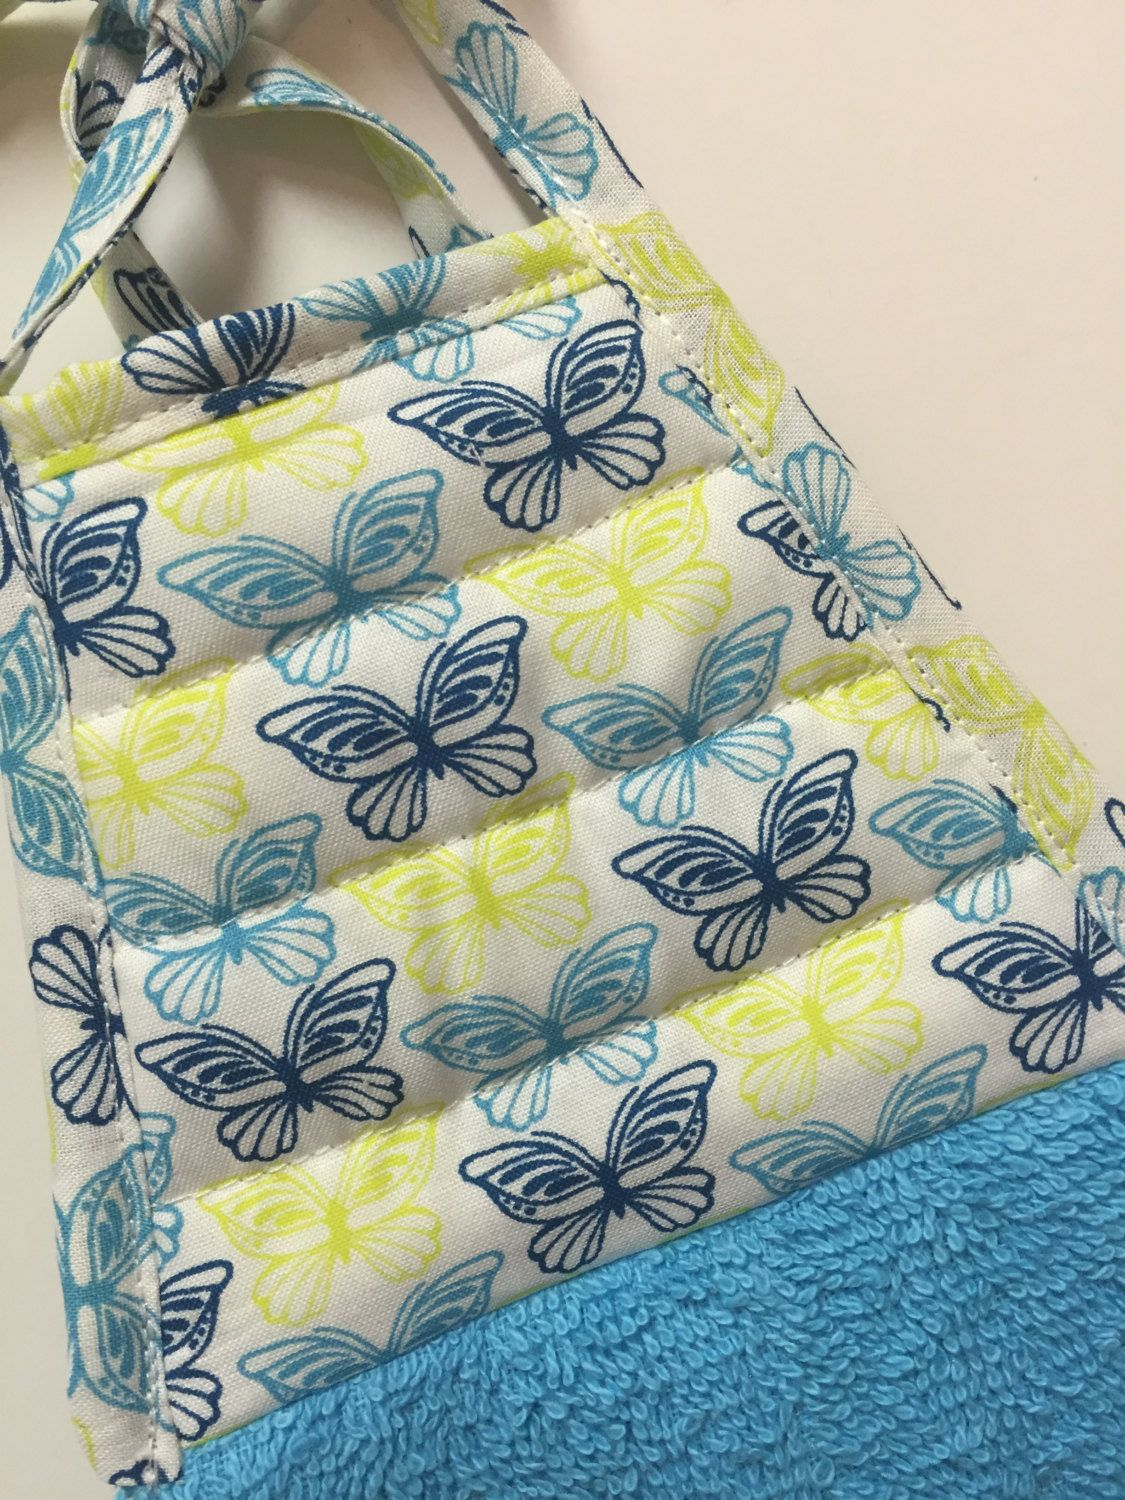 Wonderful Butterfly Kitchen Towel,Butterfly Tea Towel,Kitchen Decor,Gift For  Her,Hanging